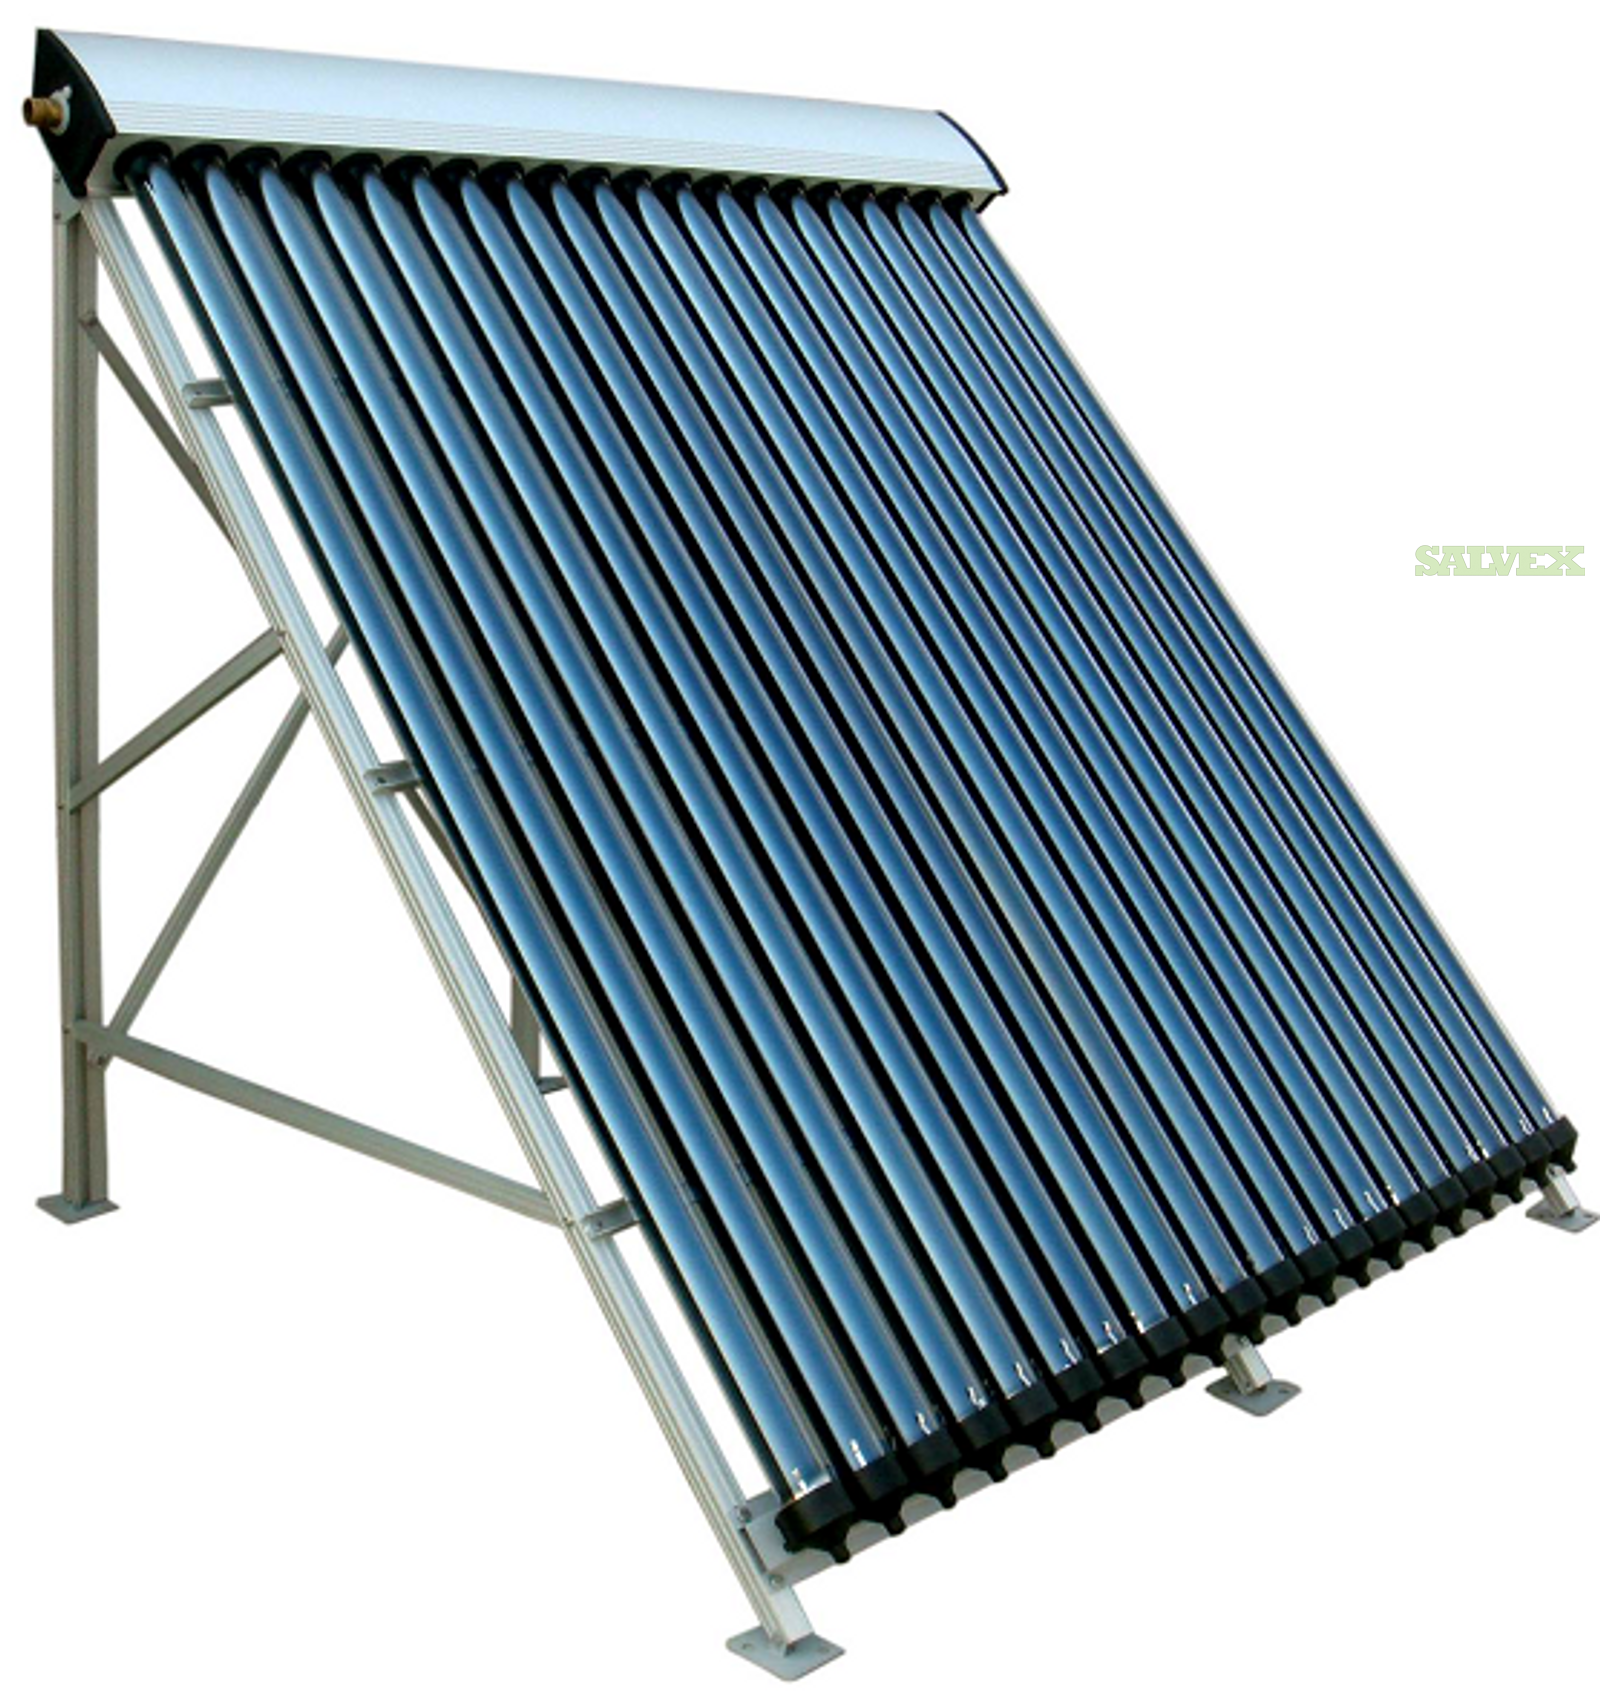 Solar Thermal APRICUS ETC-20 (Evacuated Tube with Heat Pipe) - 156 panels